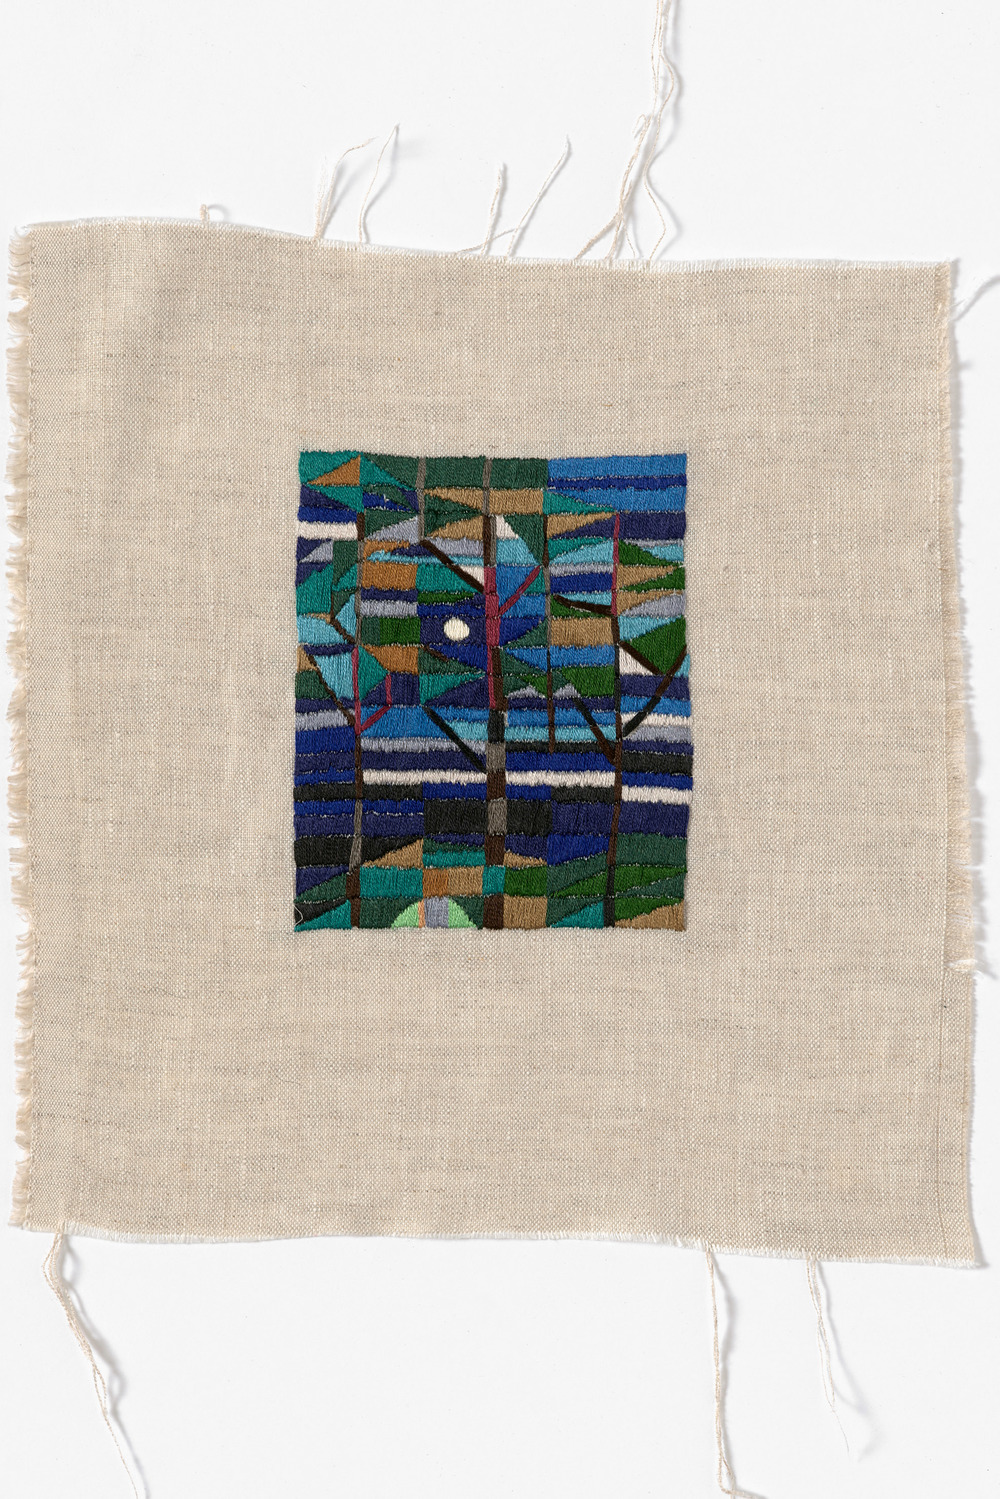 Glen Forbes, midnight 2014 Cotton thread on linen 26 x 28cm